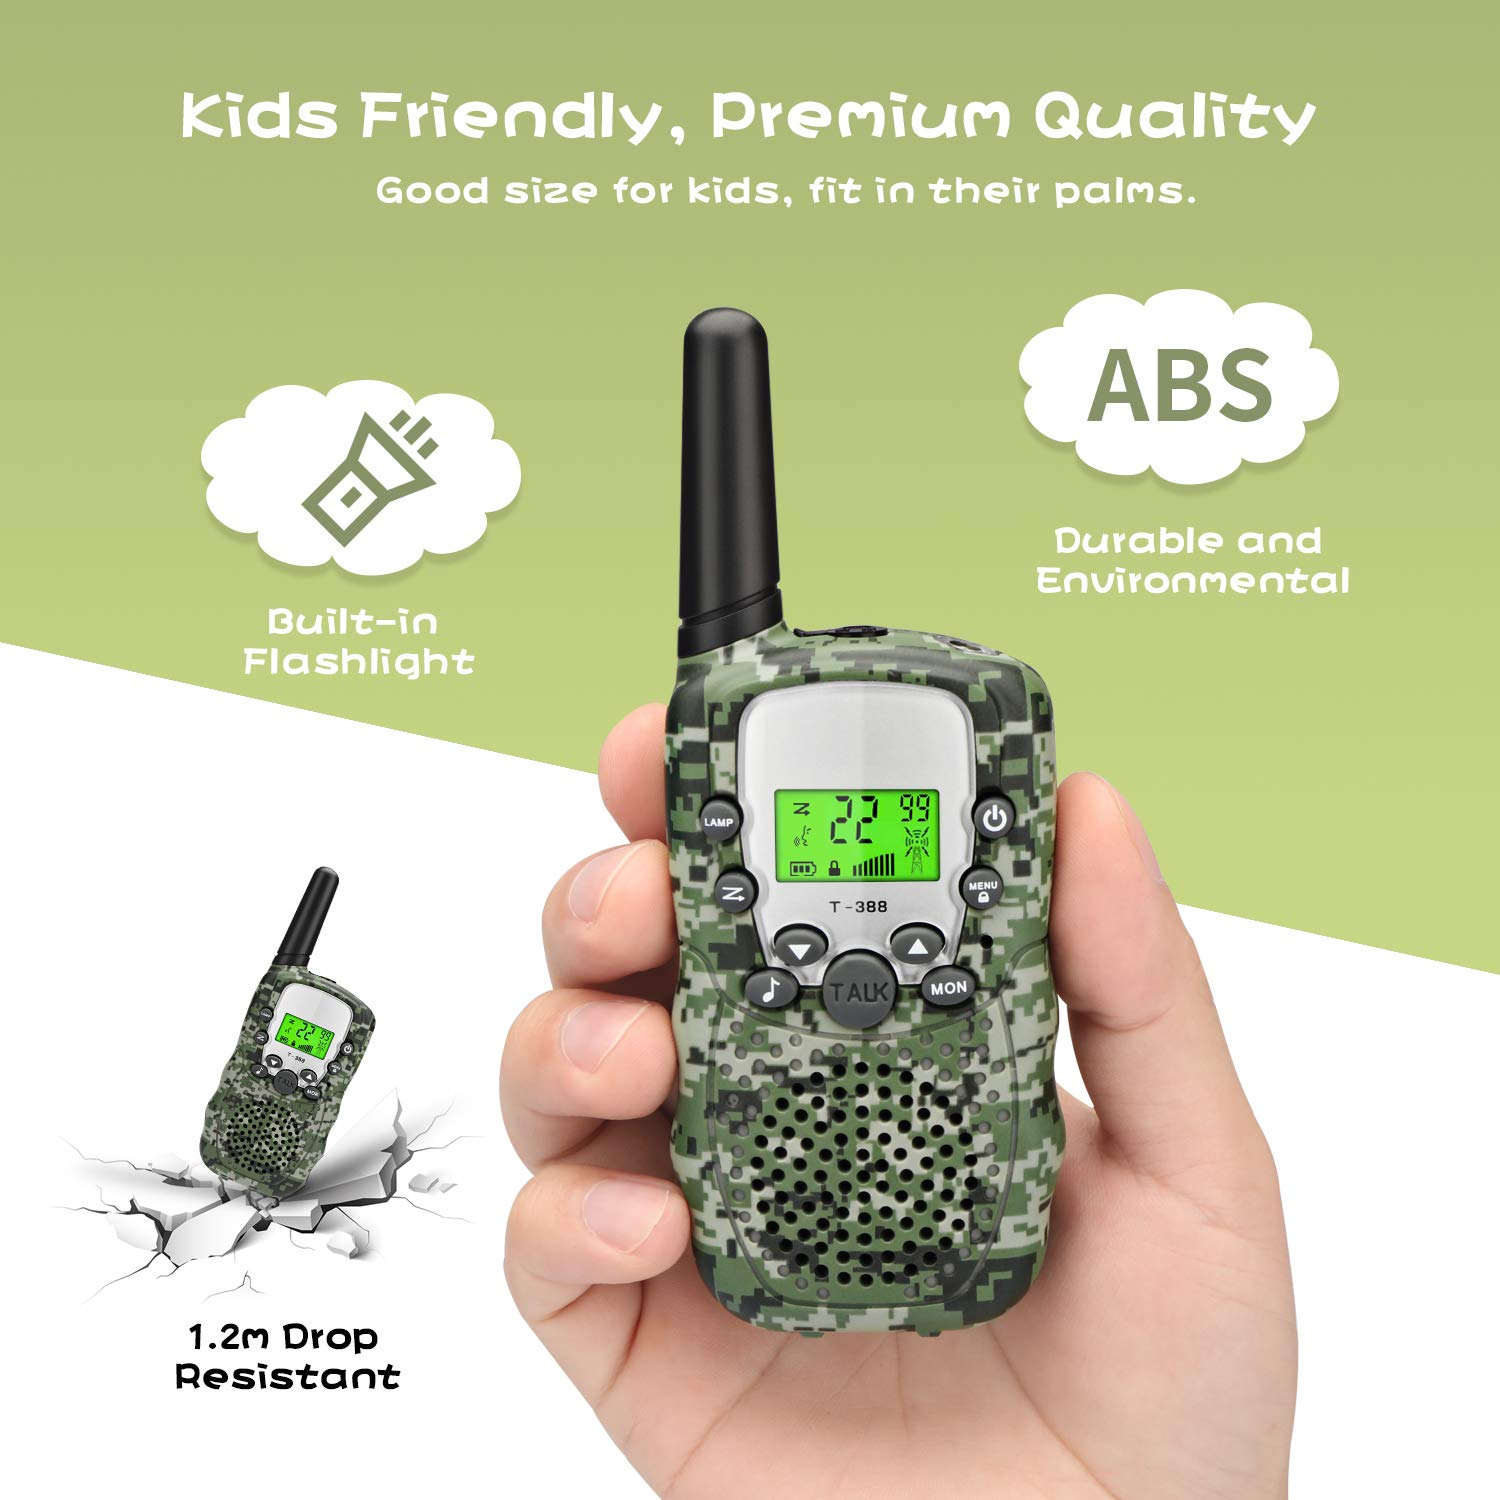 Zhenhao Walkie Talkies for Kids 3 Packs - 22 Channels Two Way Radio 3 Miles Long Range Outdoor Toys with 3 Earpieces and 3 Lanyards for Boys Girls by Zhenhao (Image #2)